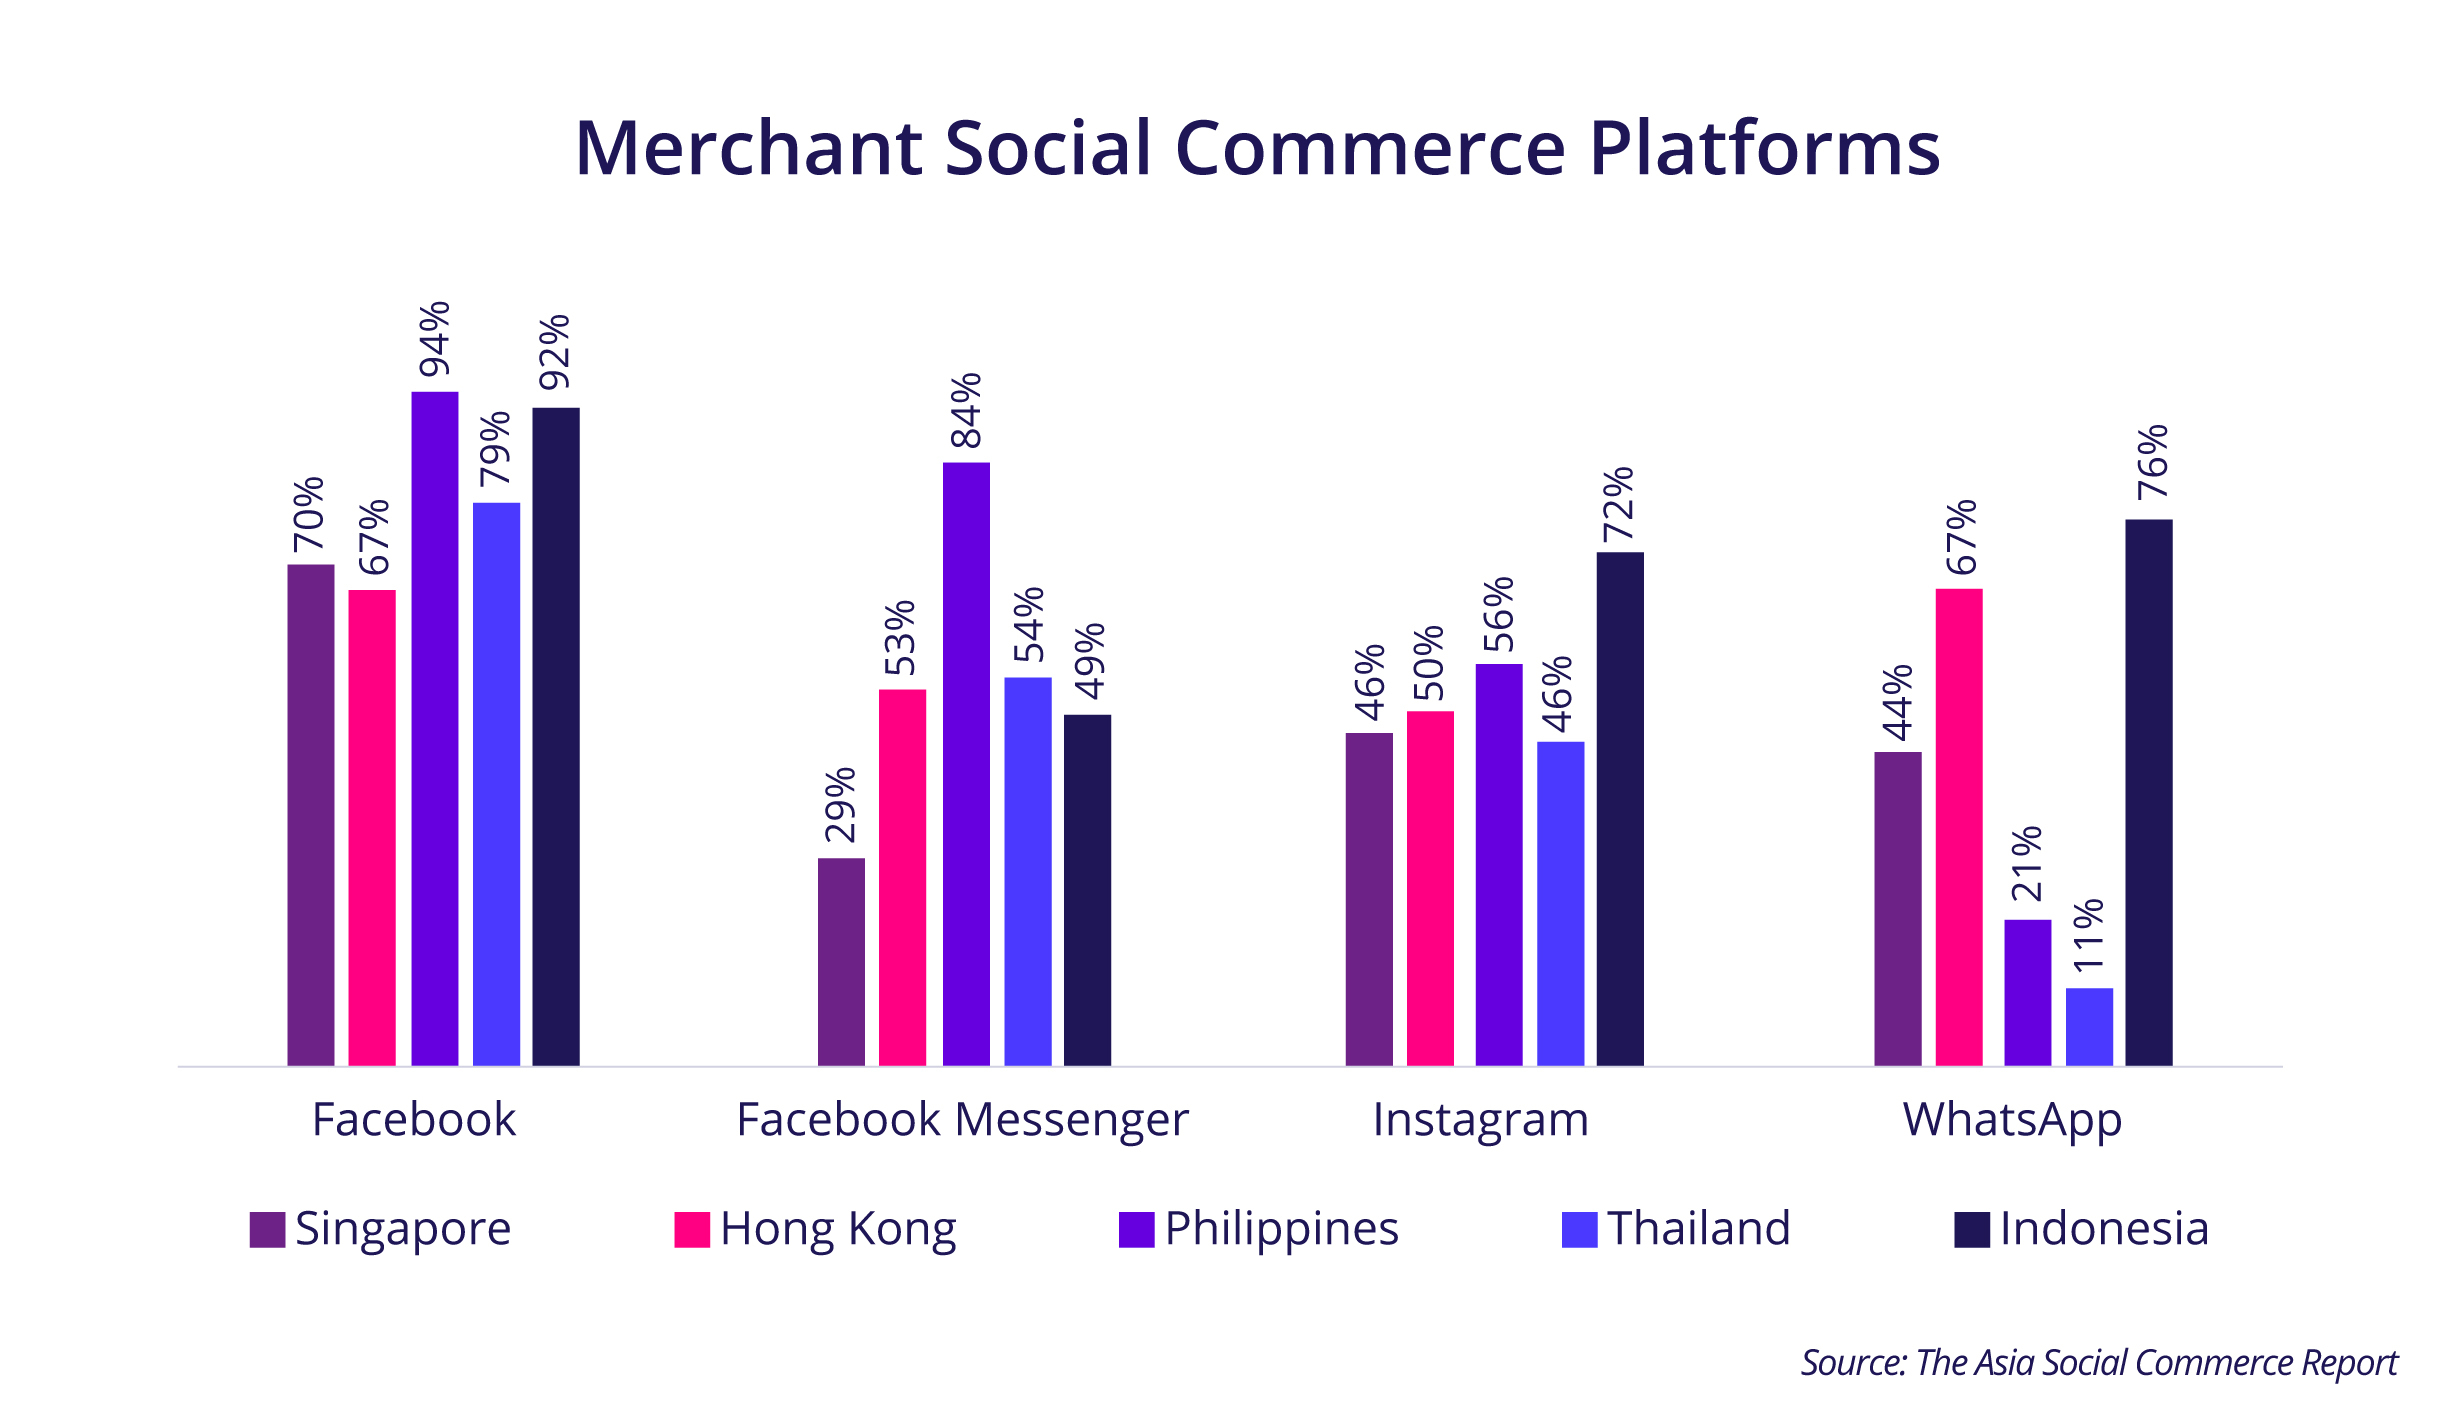 Southeast Asian eCommerce retailers using social networks to drive multichannel sales